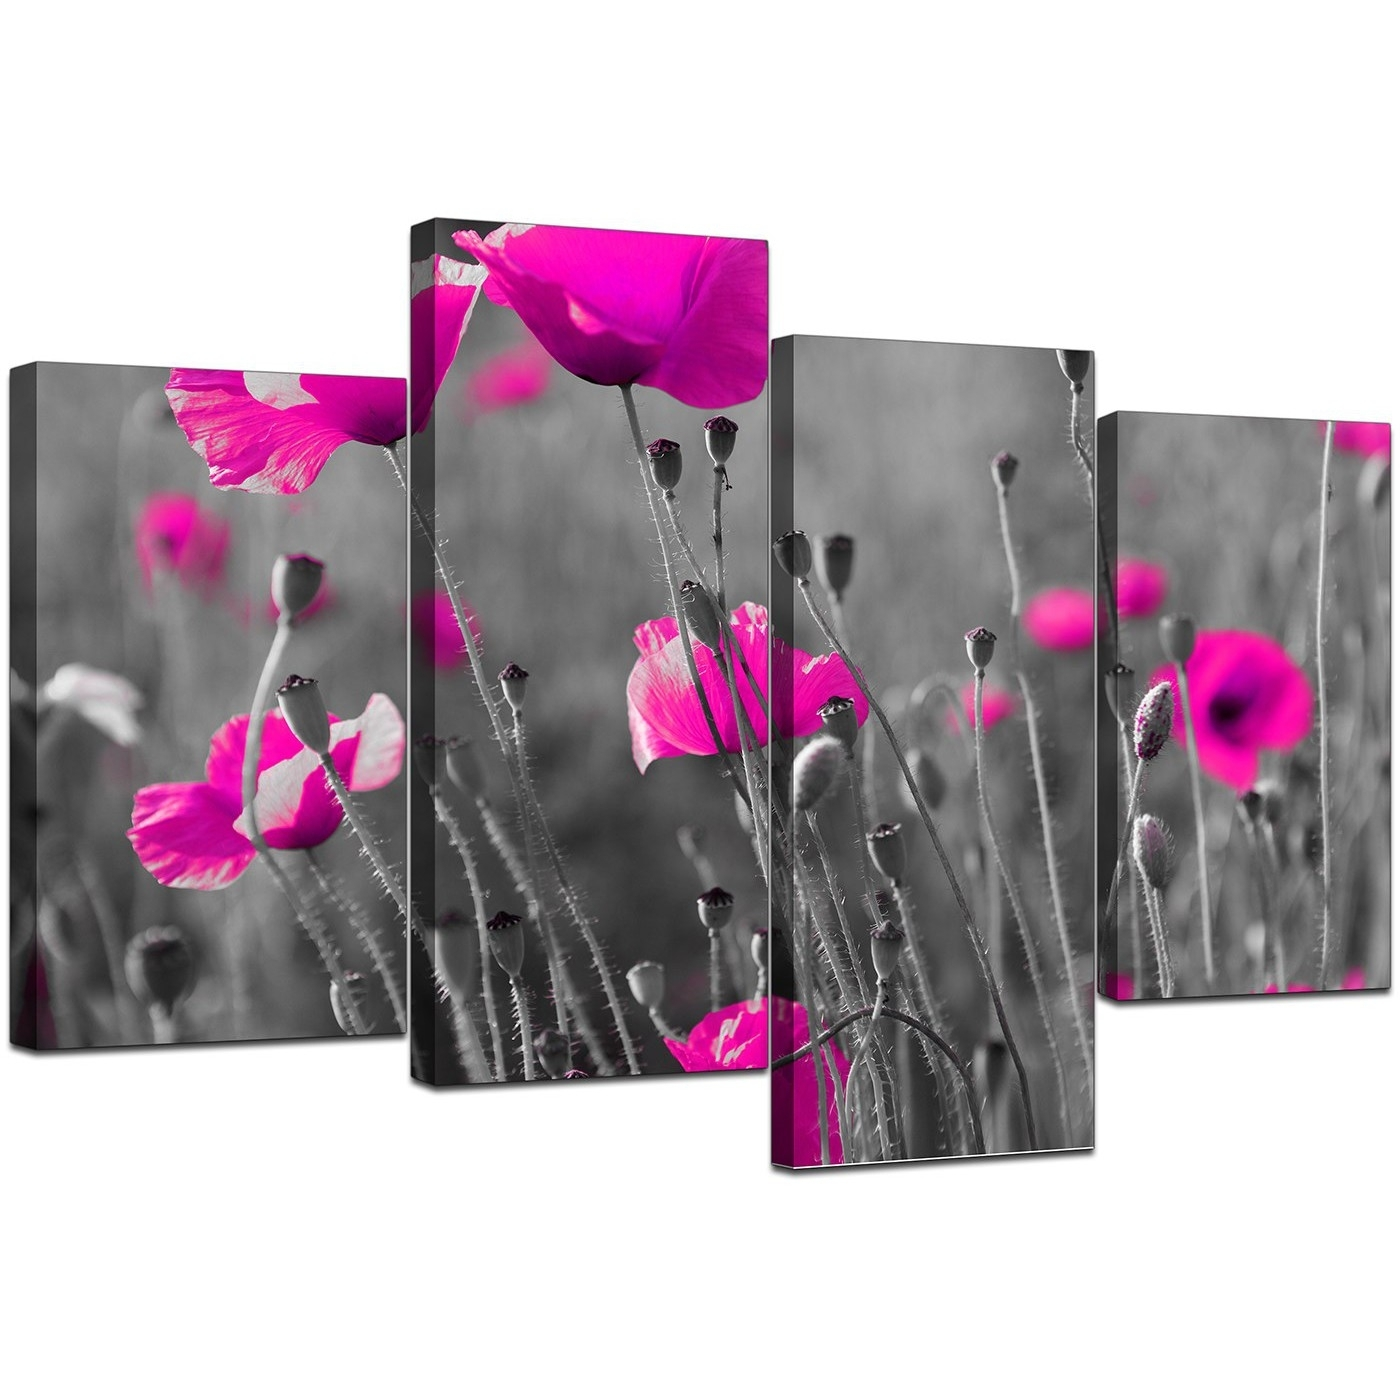 Canvas Art Of Pink Poppies In Black & White For Your Girls Bedroom For Most Recently Released Pink Canvas Wall Art (View 9 of 15)